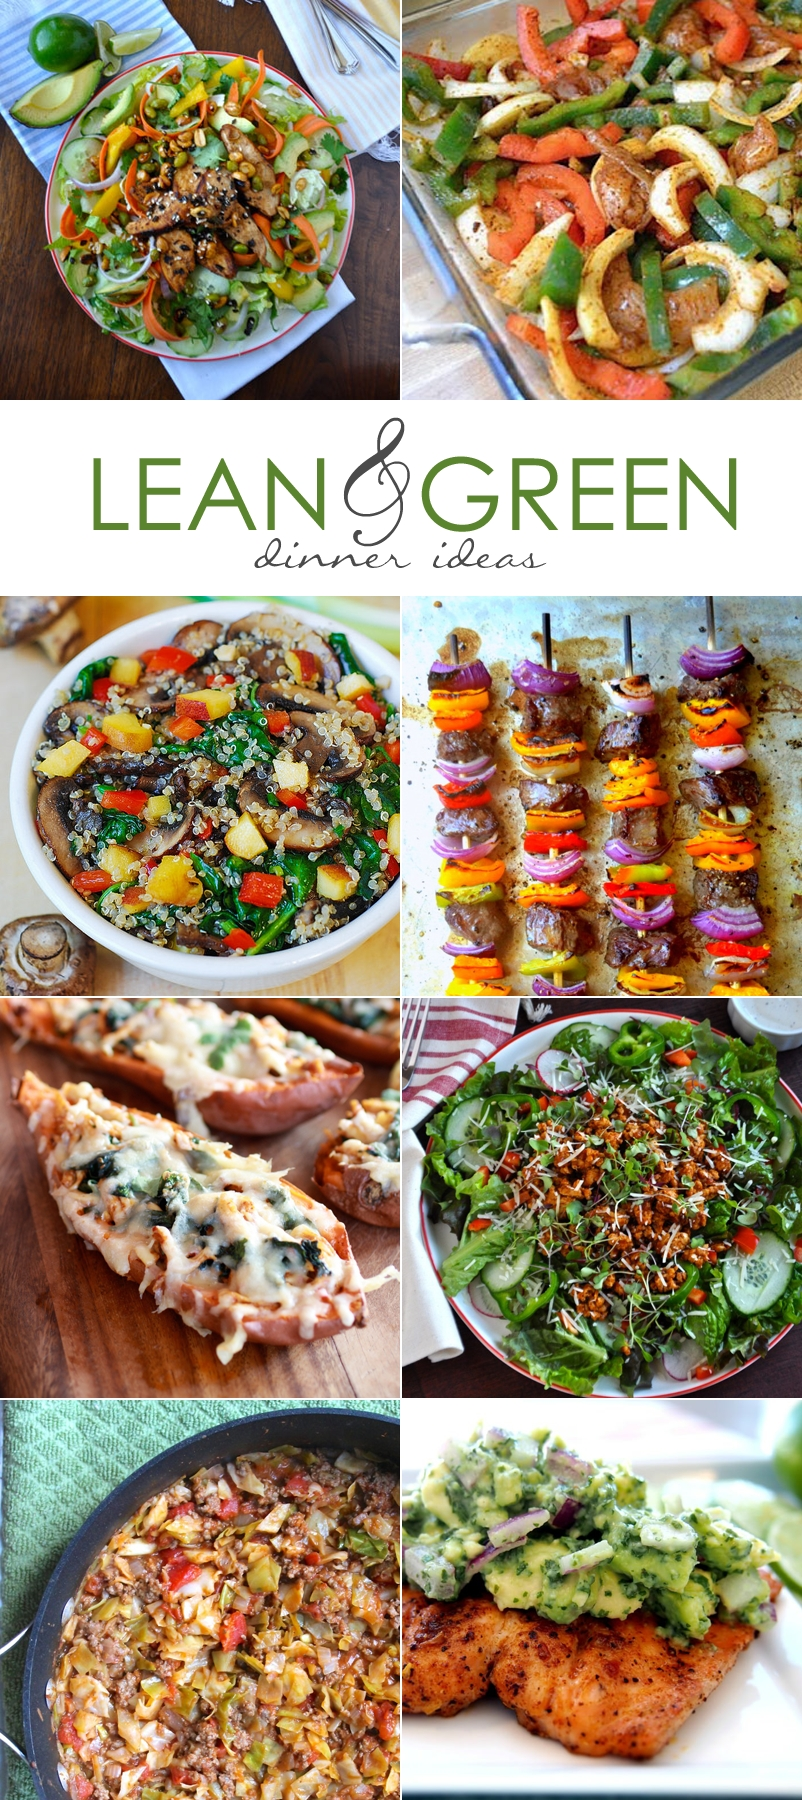 10 Trendy Medifast Lean And Green Meal Ideas 8 lean green dinner ideas healthier options for the family our 1 2021